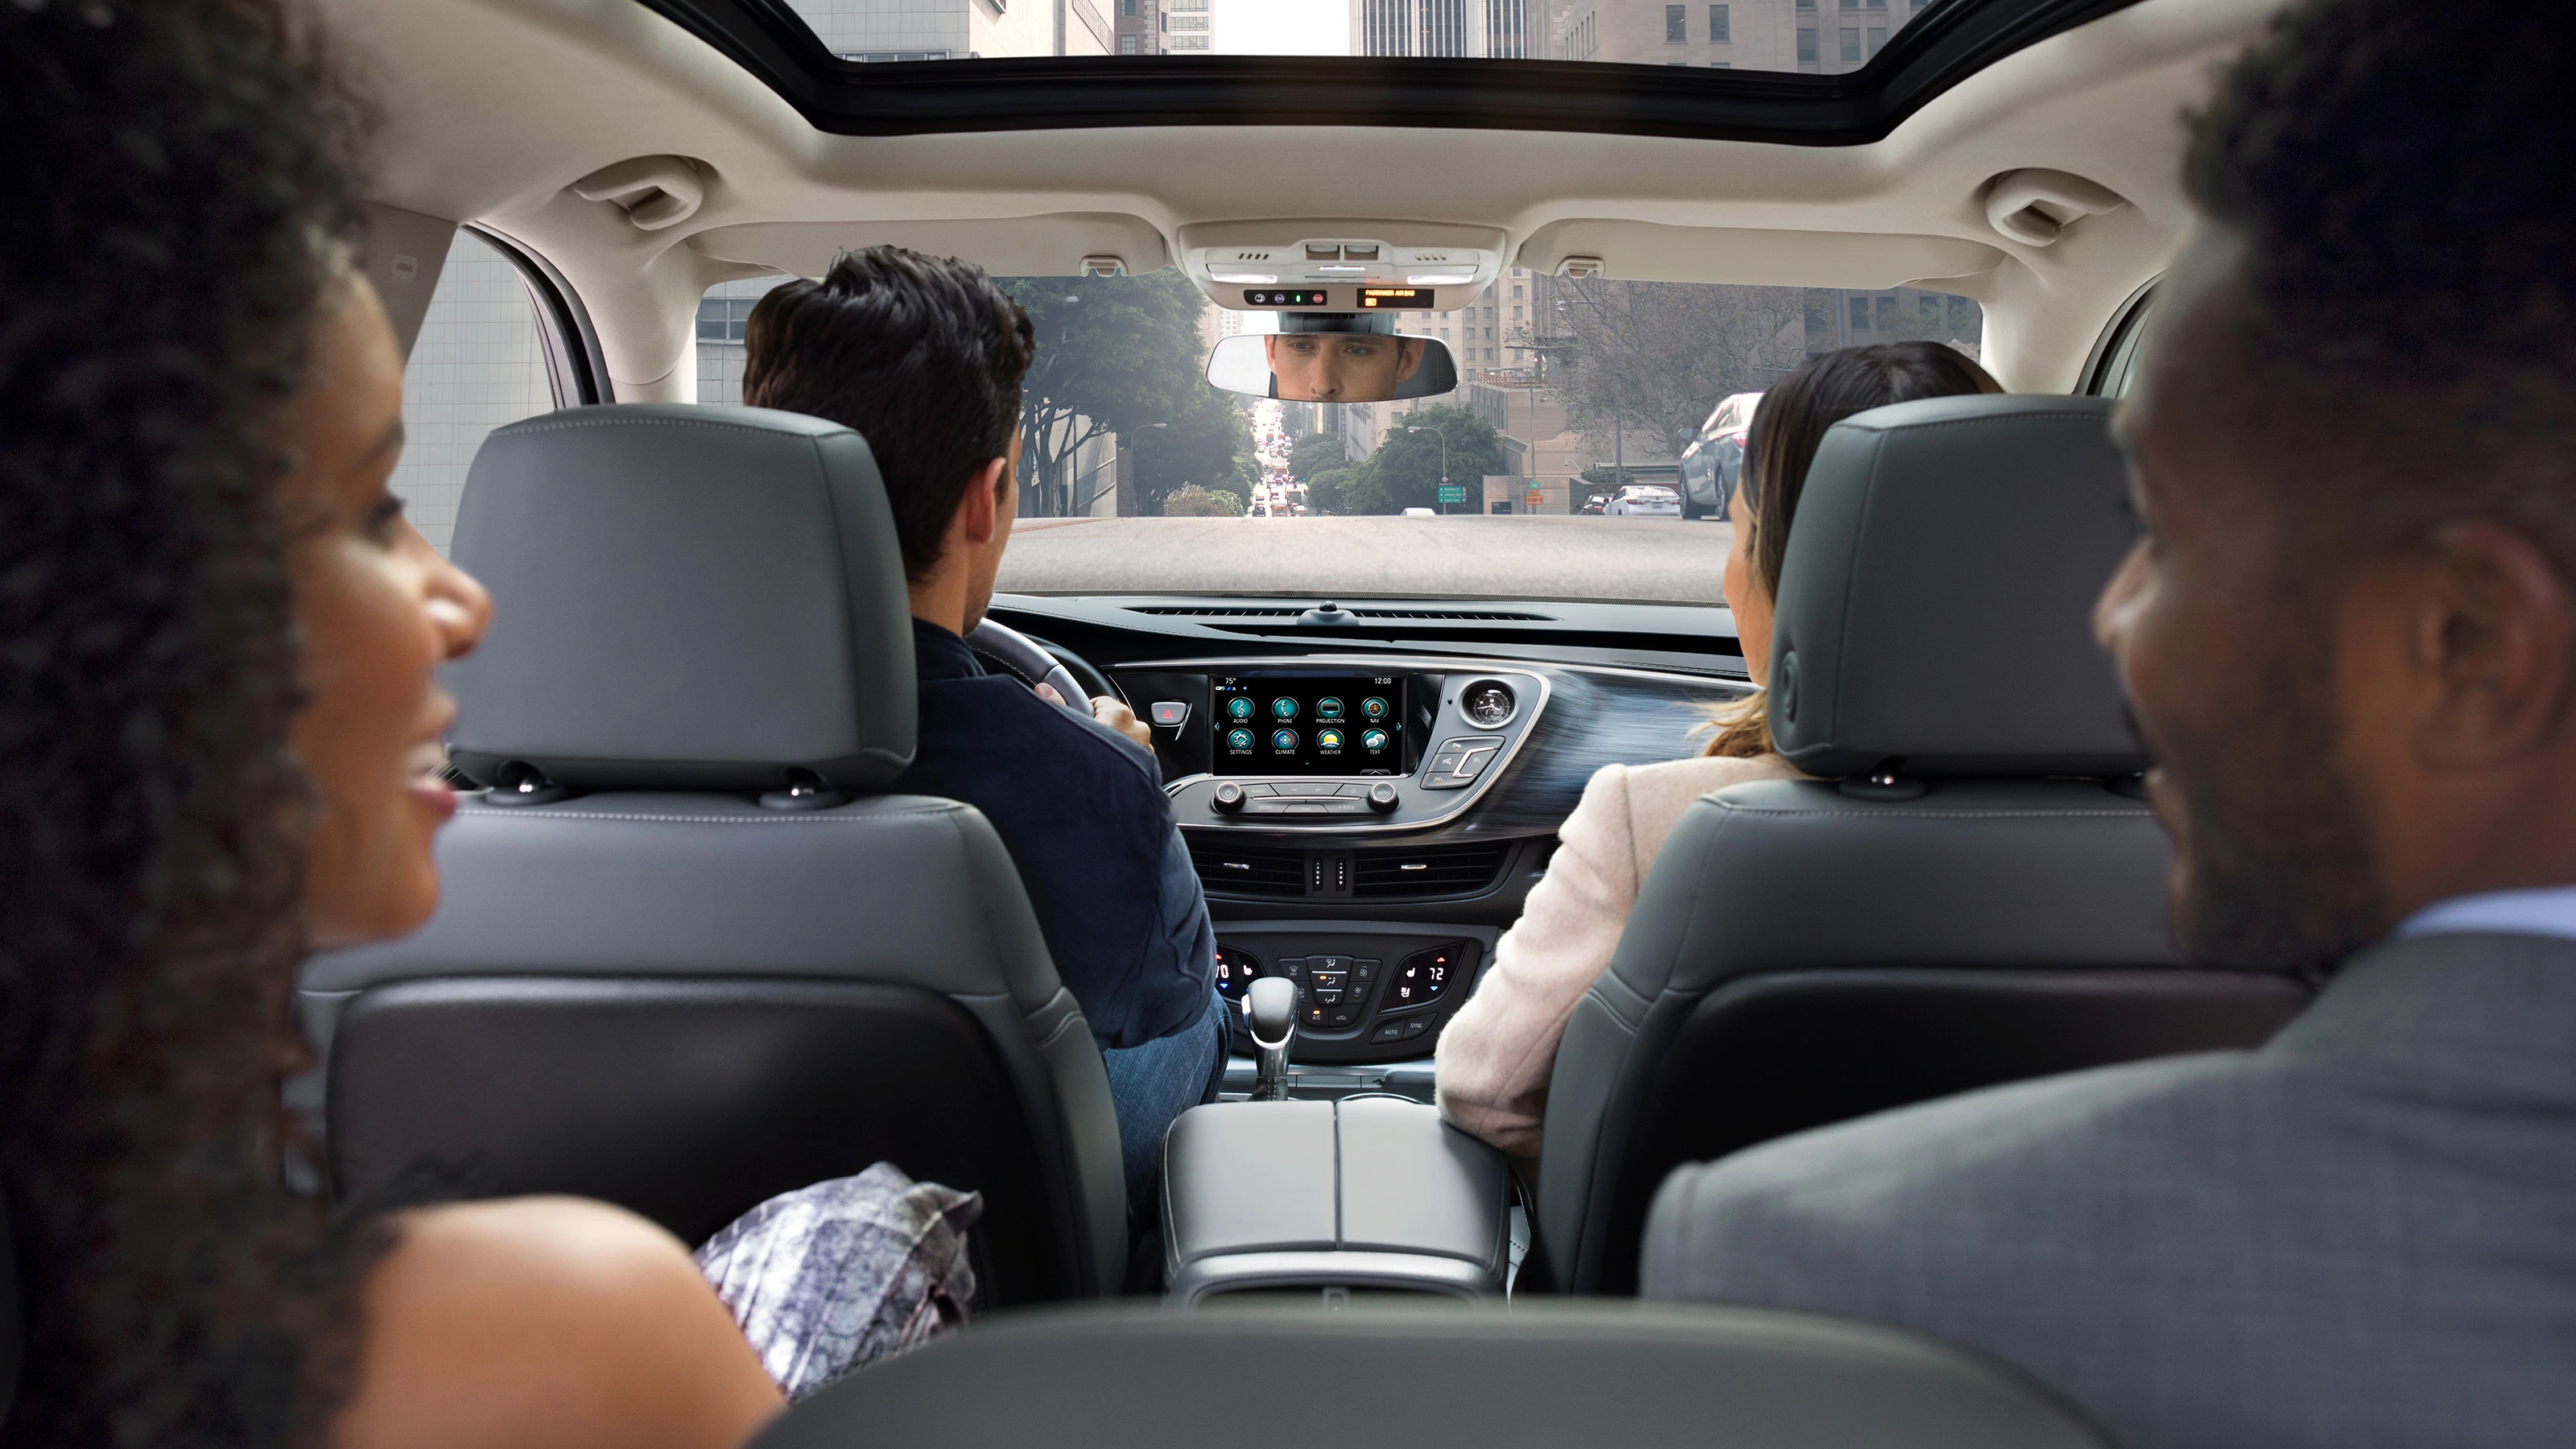 The Roomy Interior of the 2019 Envision